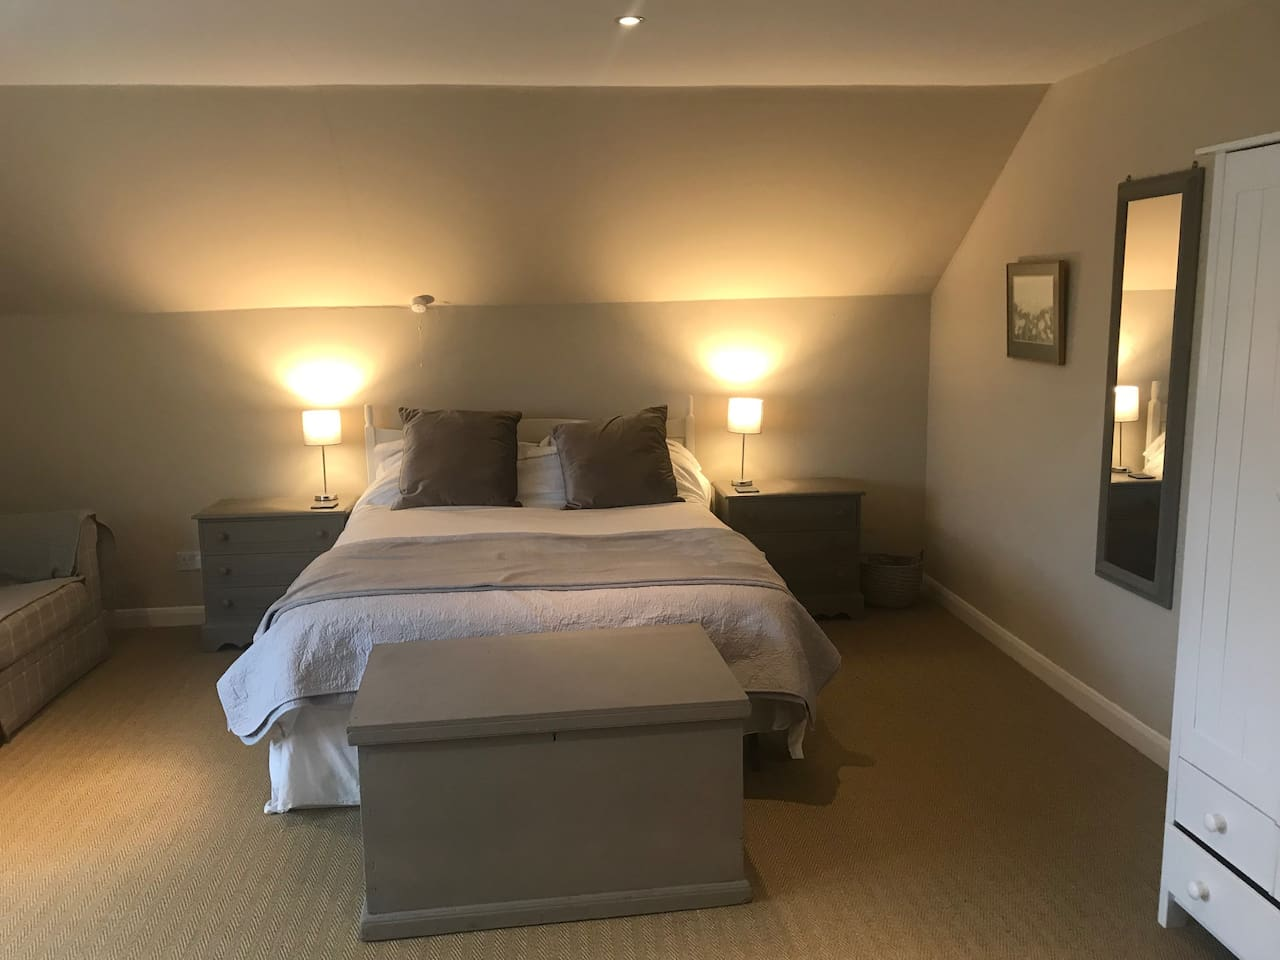 Large Bedroom with Double Bed, Wardrobe, Chest of Draws and Sofa.  A BabyBjörn Travel Cot and Single Toddler Mattress can also be provided for use in the Bedroom and/or sitting room if you are travelling with children.